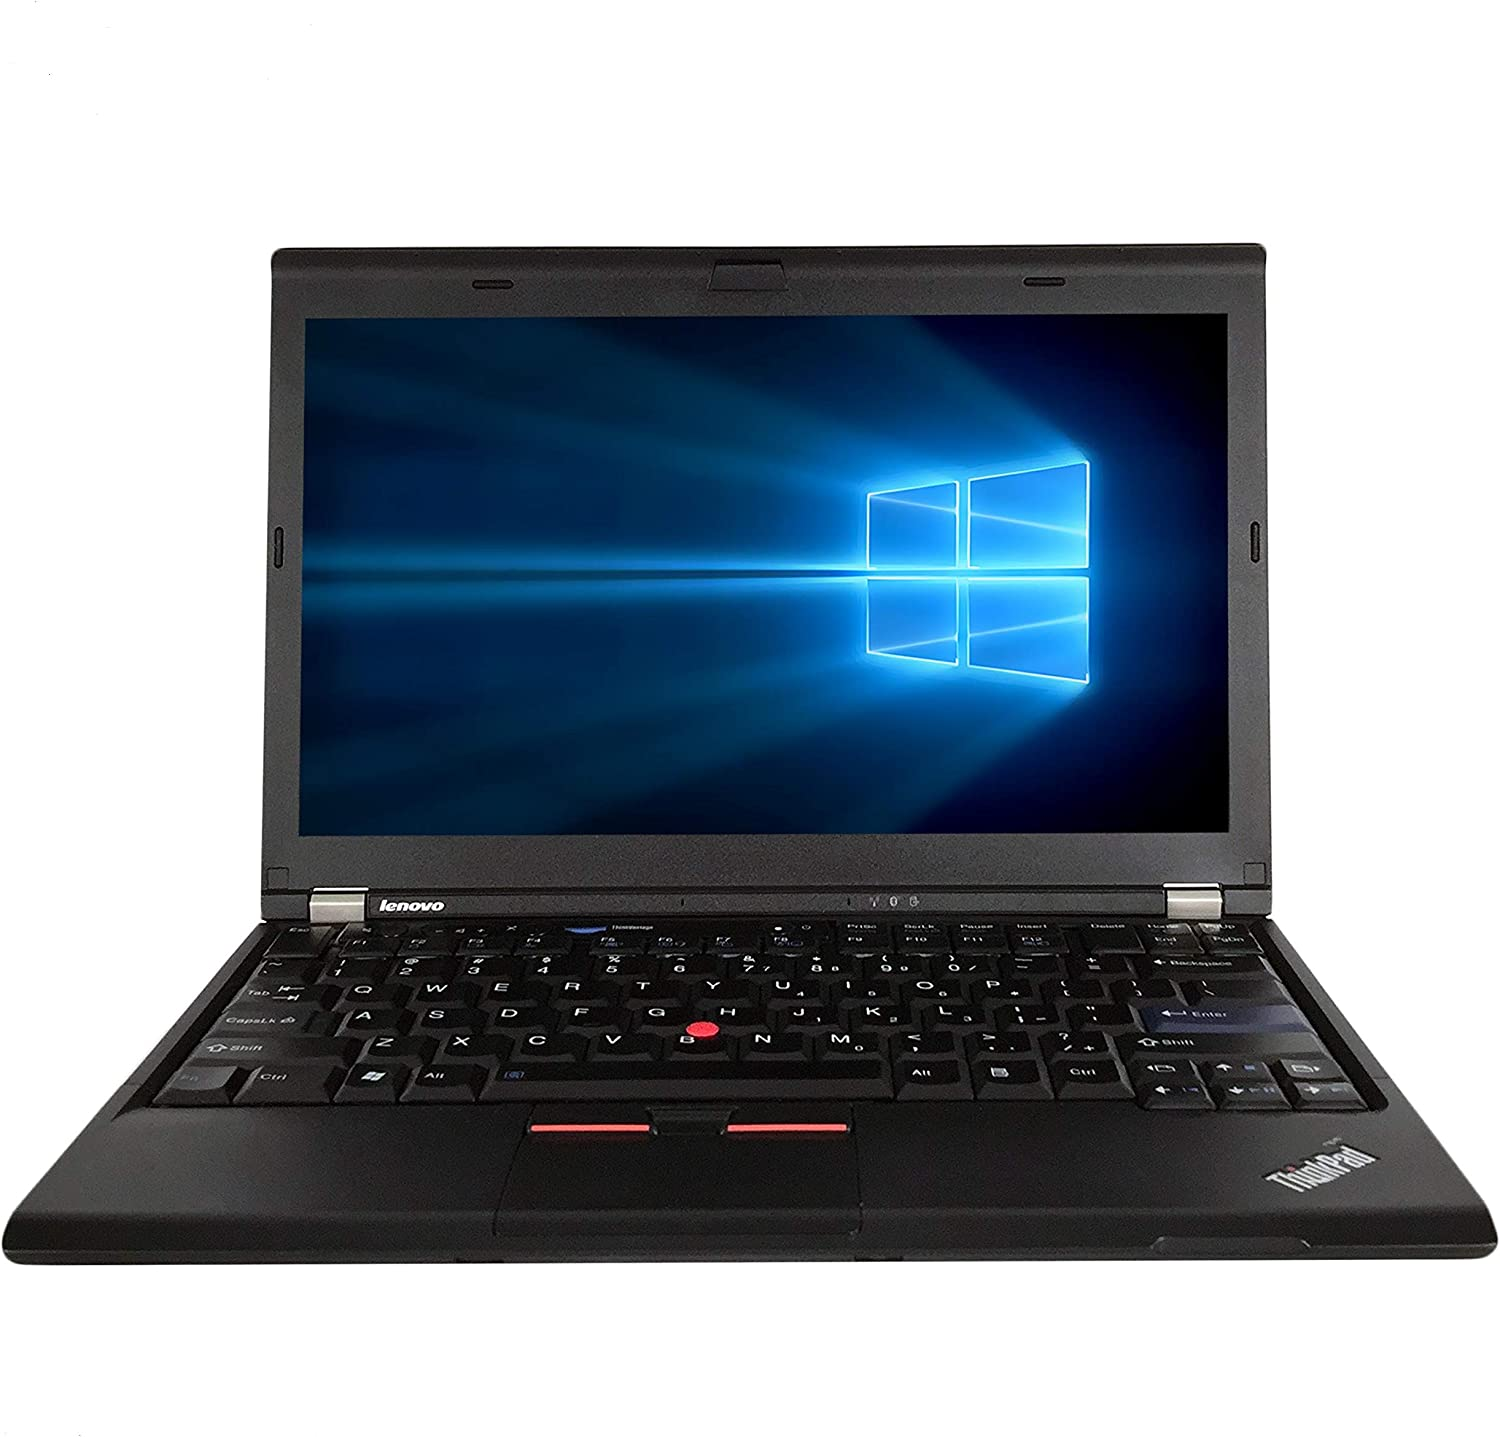 Lenovo Laptop X230 Core i5-3320m 2.60GHz 4GB 128GB SSD Win 10 Pro (Renewed)